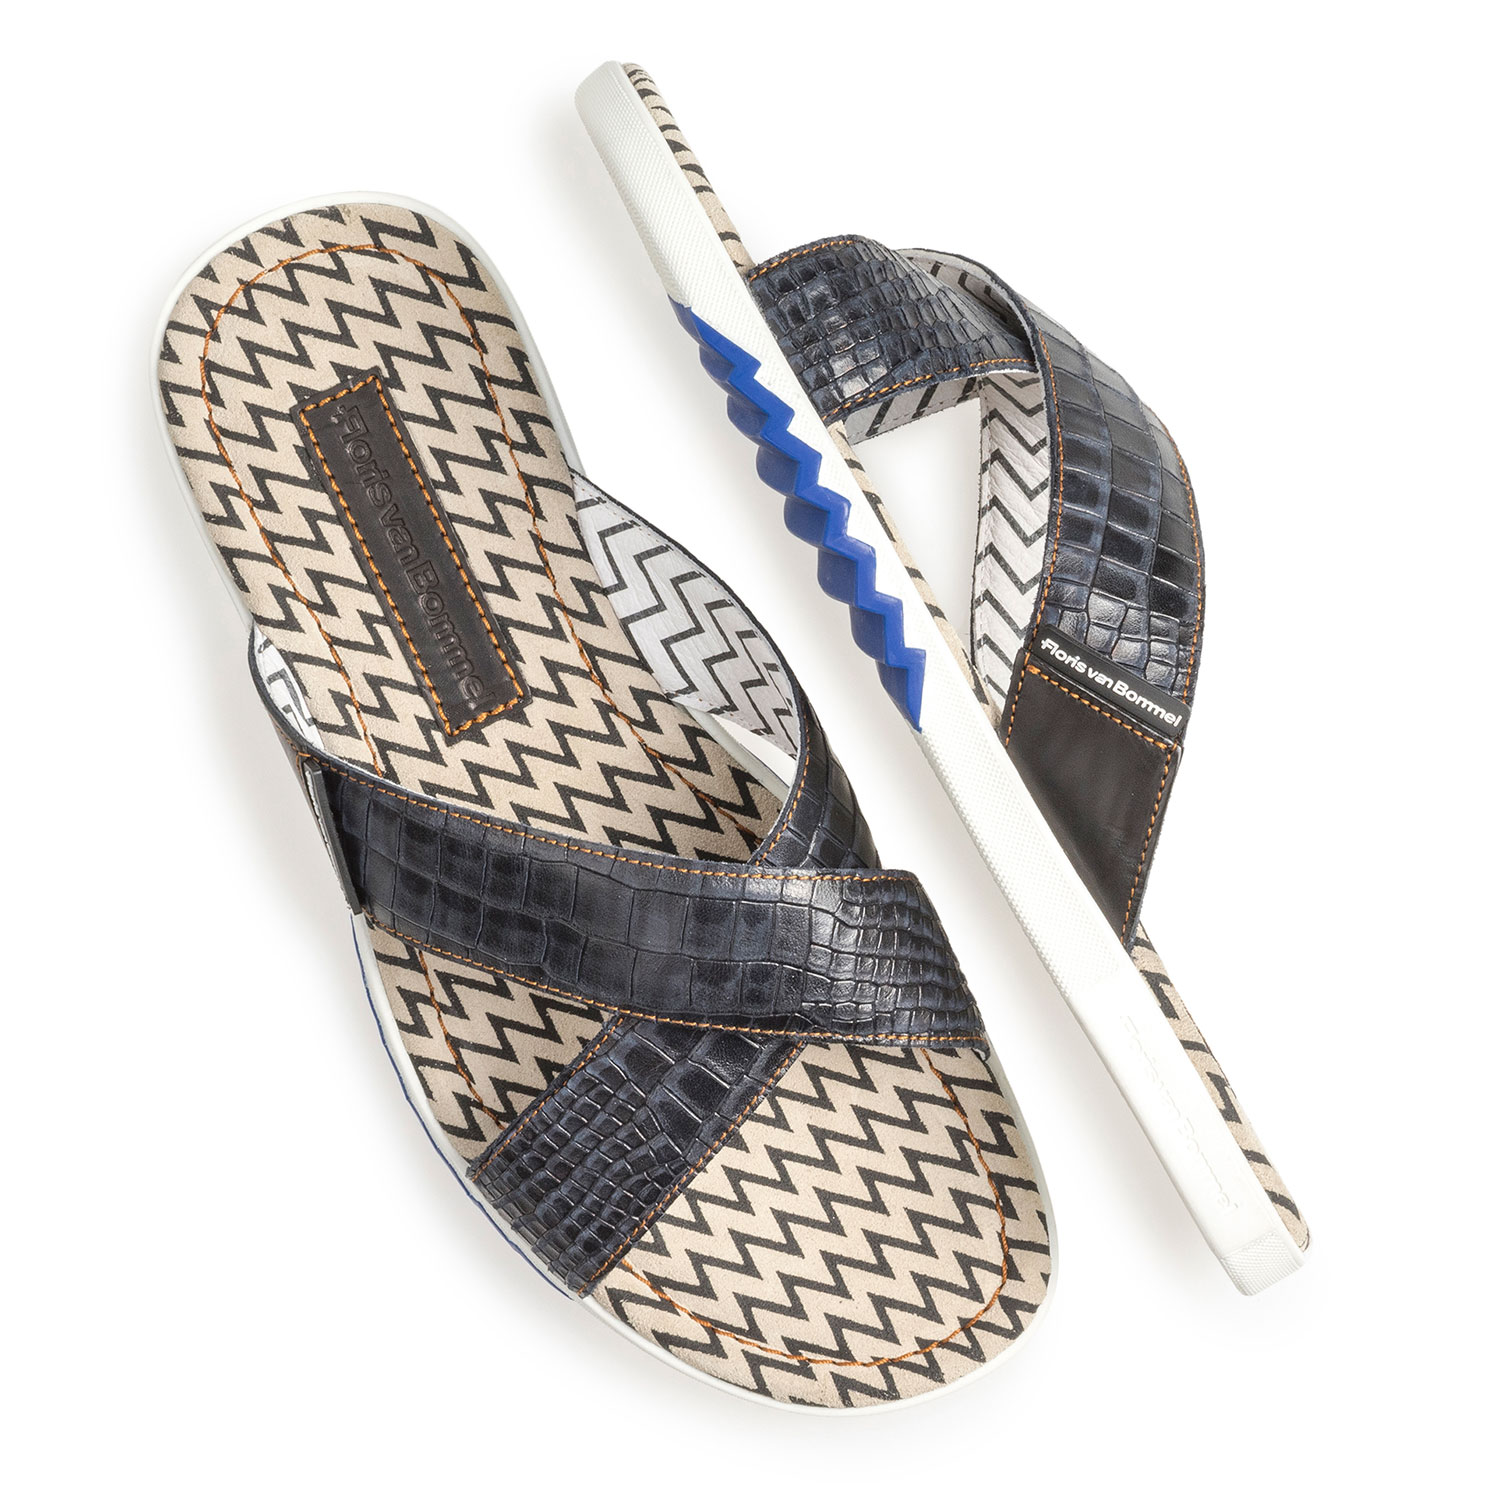 20200/12 - Dark blue nubuck leather cross strap slipper with print